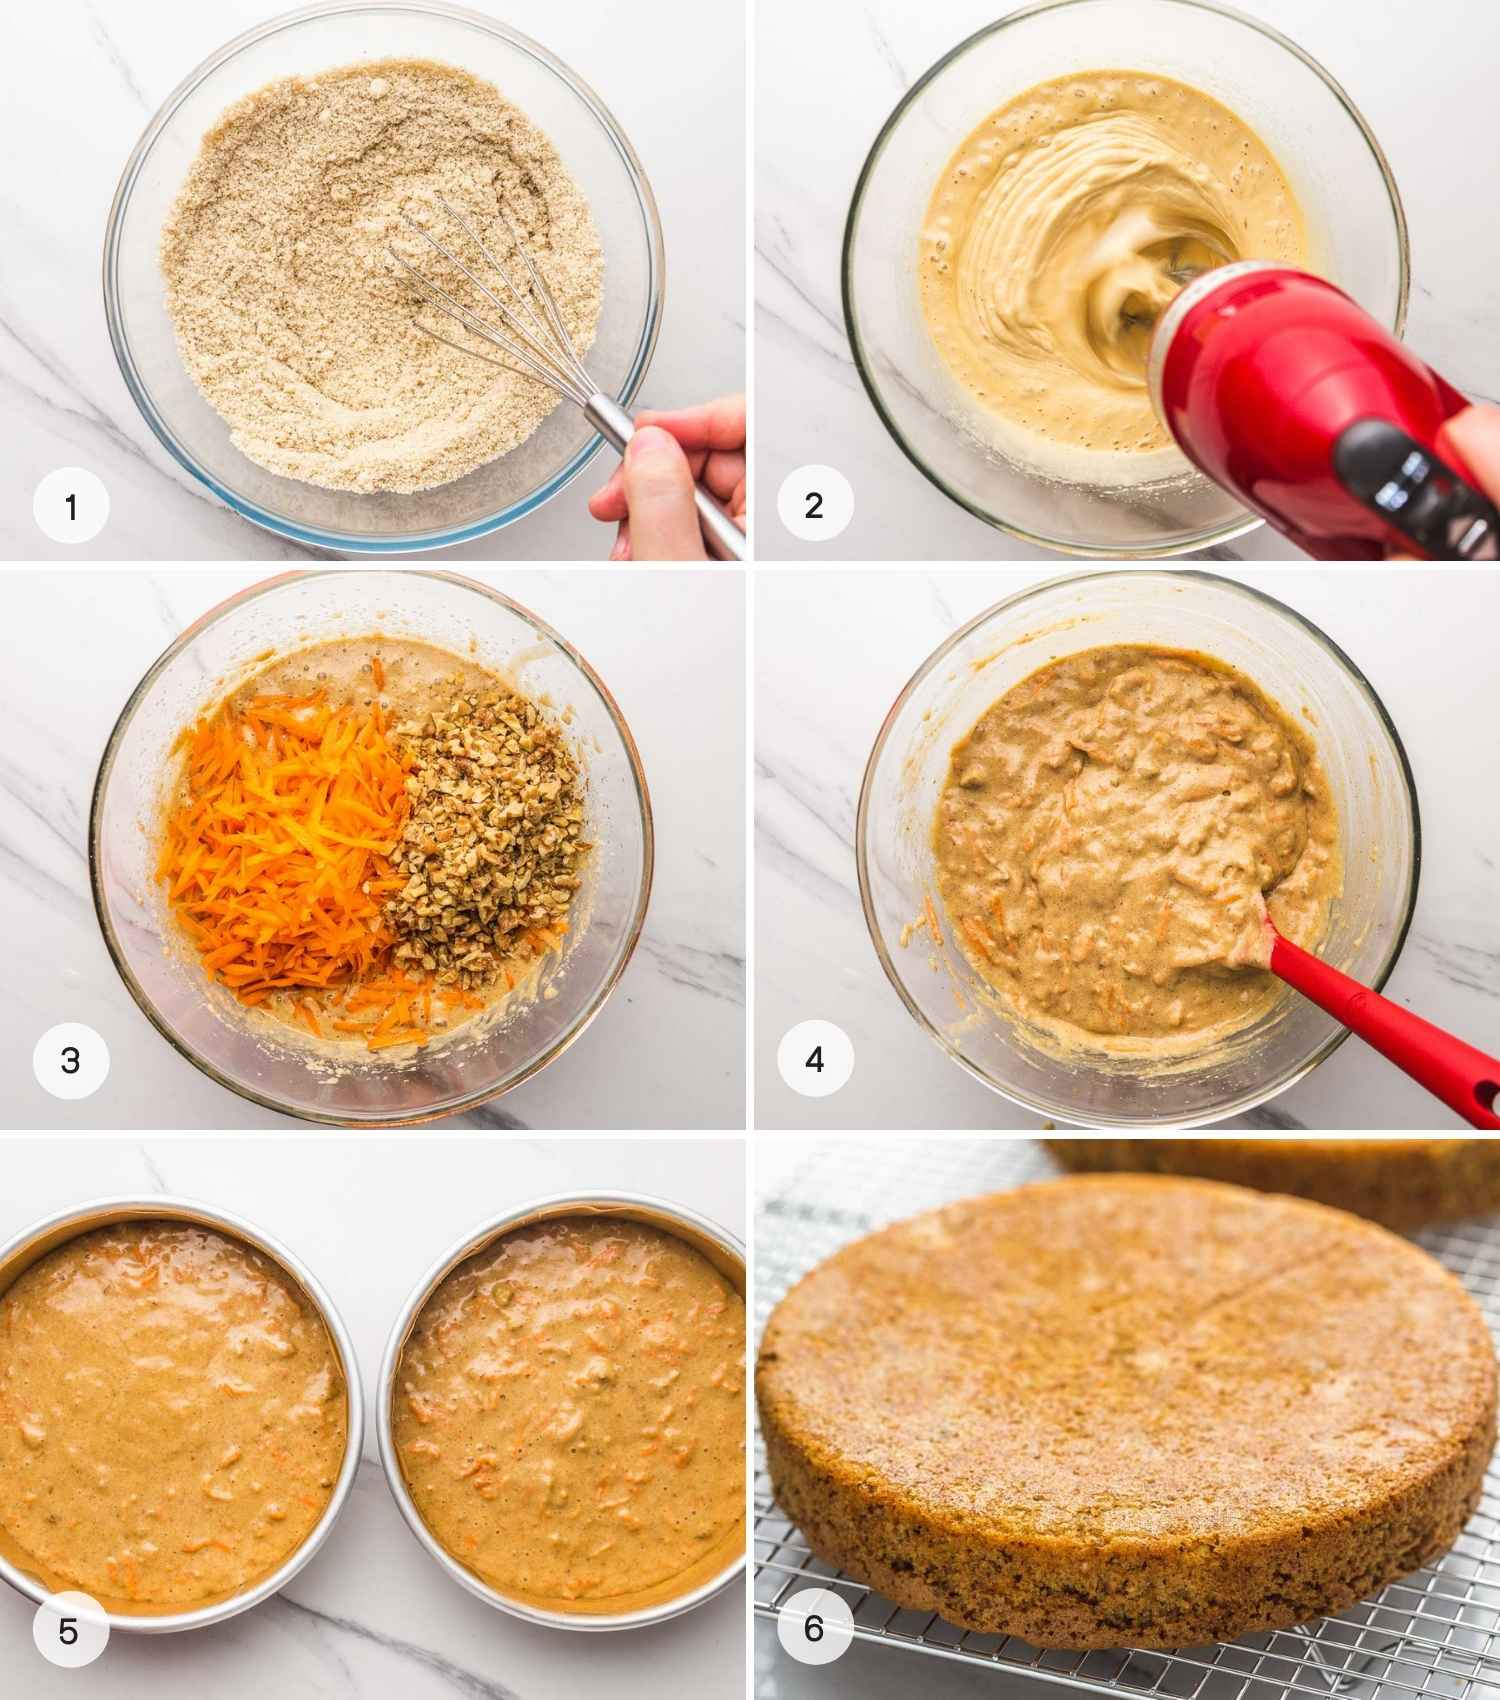 A collage with 6 images on how to make and bake gluten free carrot cake